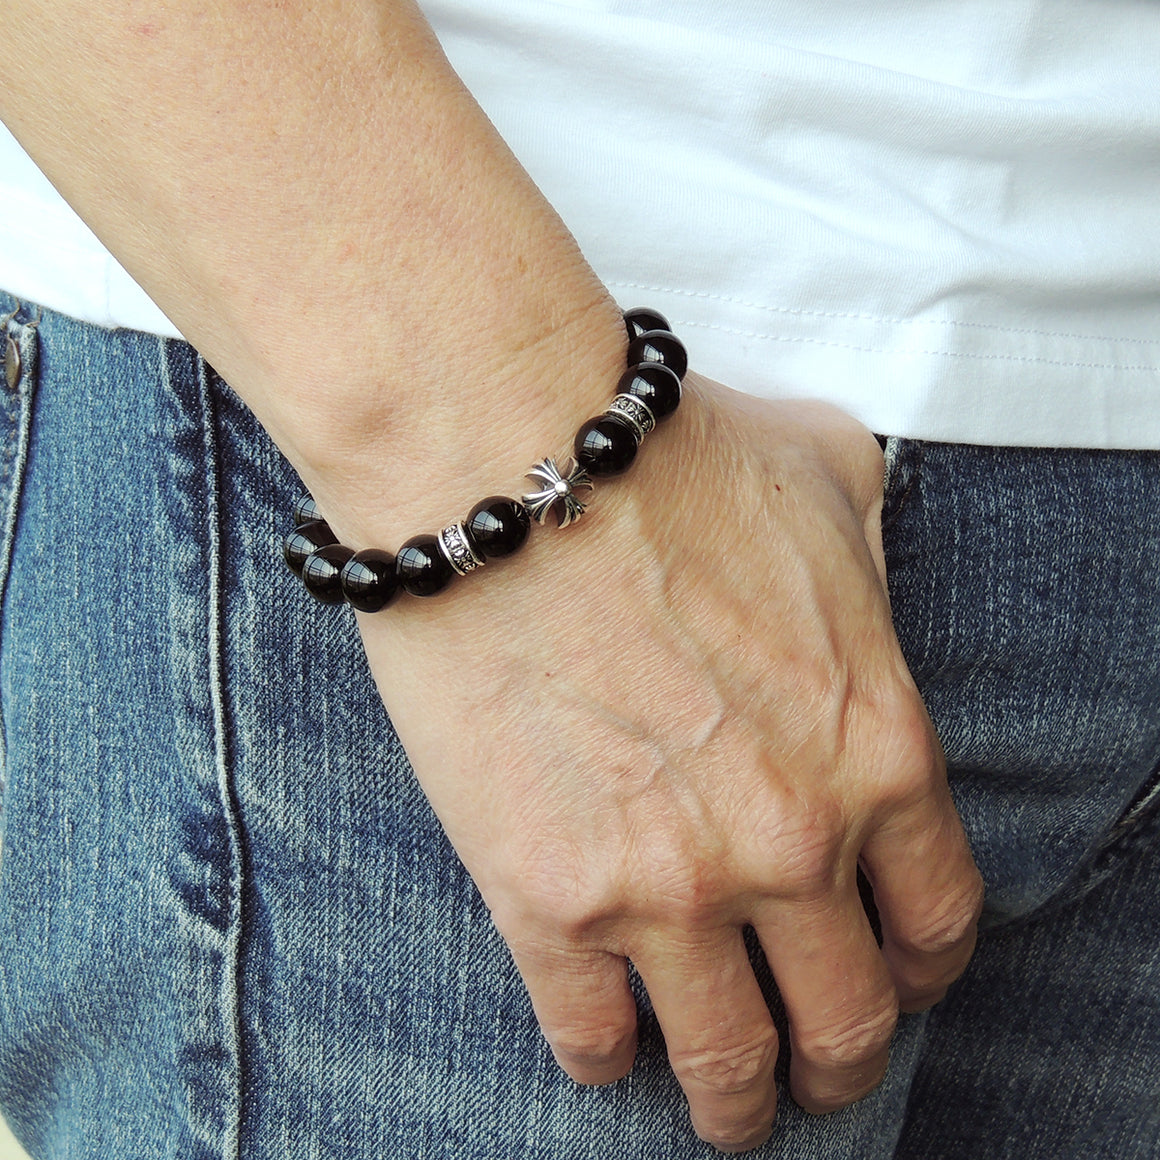 Handmade Cross Pattern Design Braided Bracelet Healing Bright Black Onyx 10mm Gemstones for Grounding Conscious Meditation & Wellness with Genuine S925 Sterling Silver Beads - BR1510